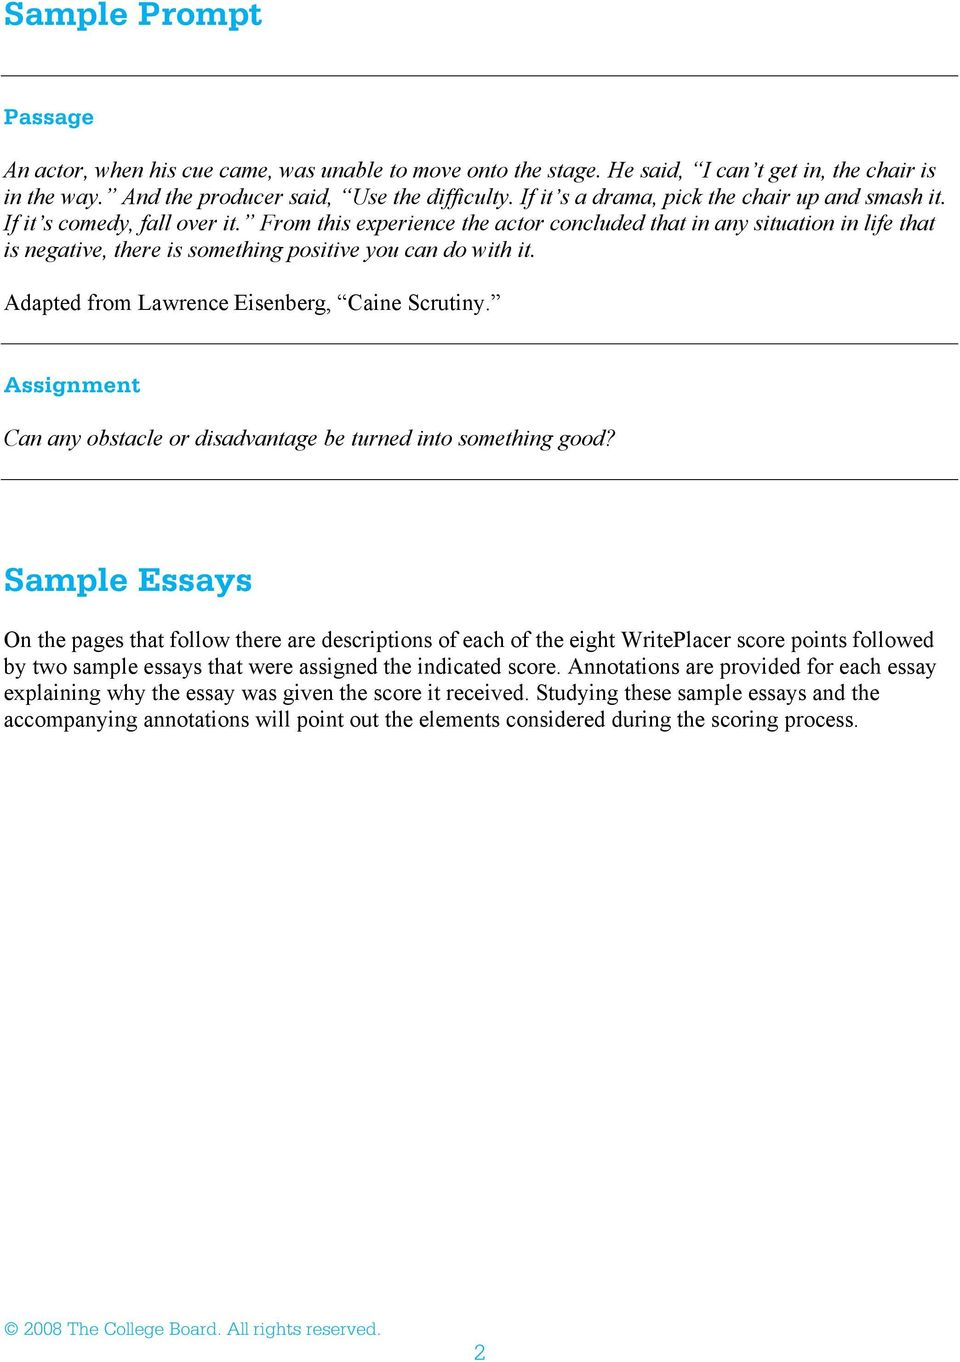 Writeplacer guide with sample essays pdf